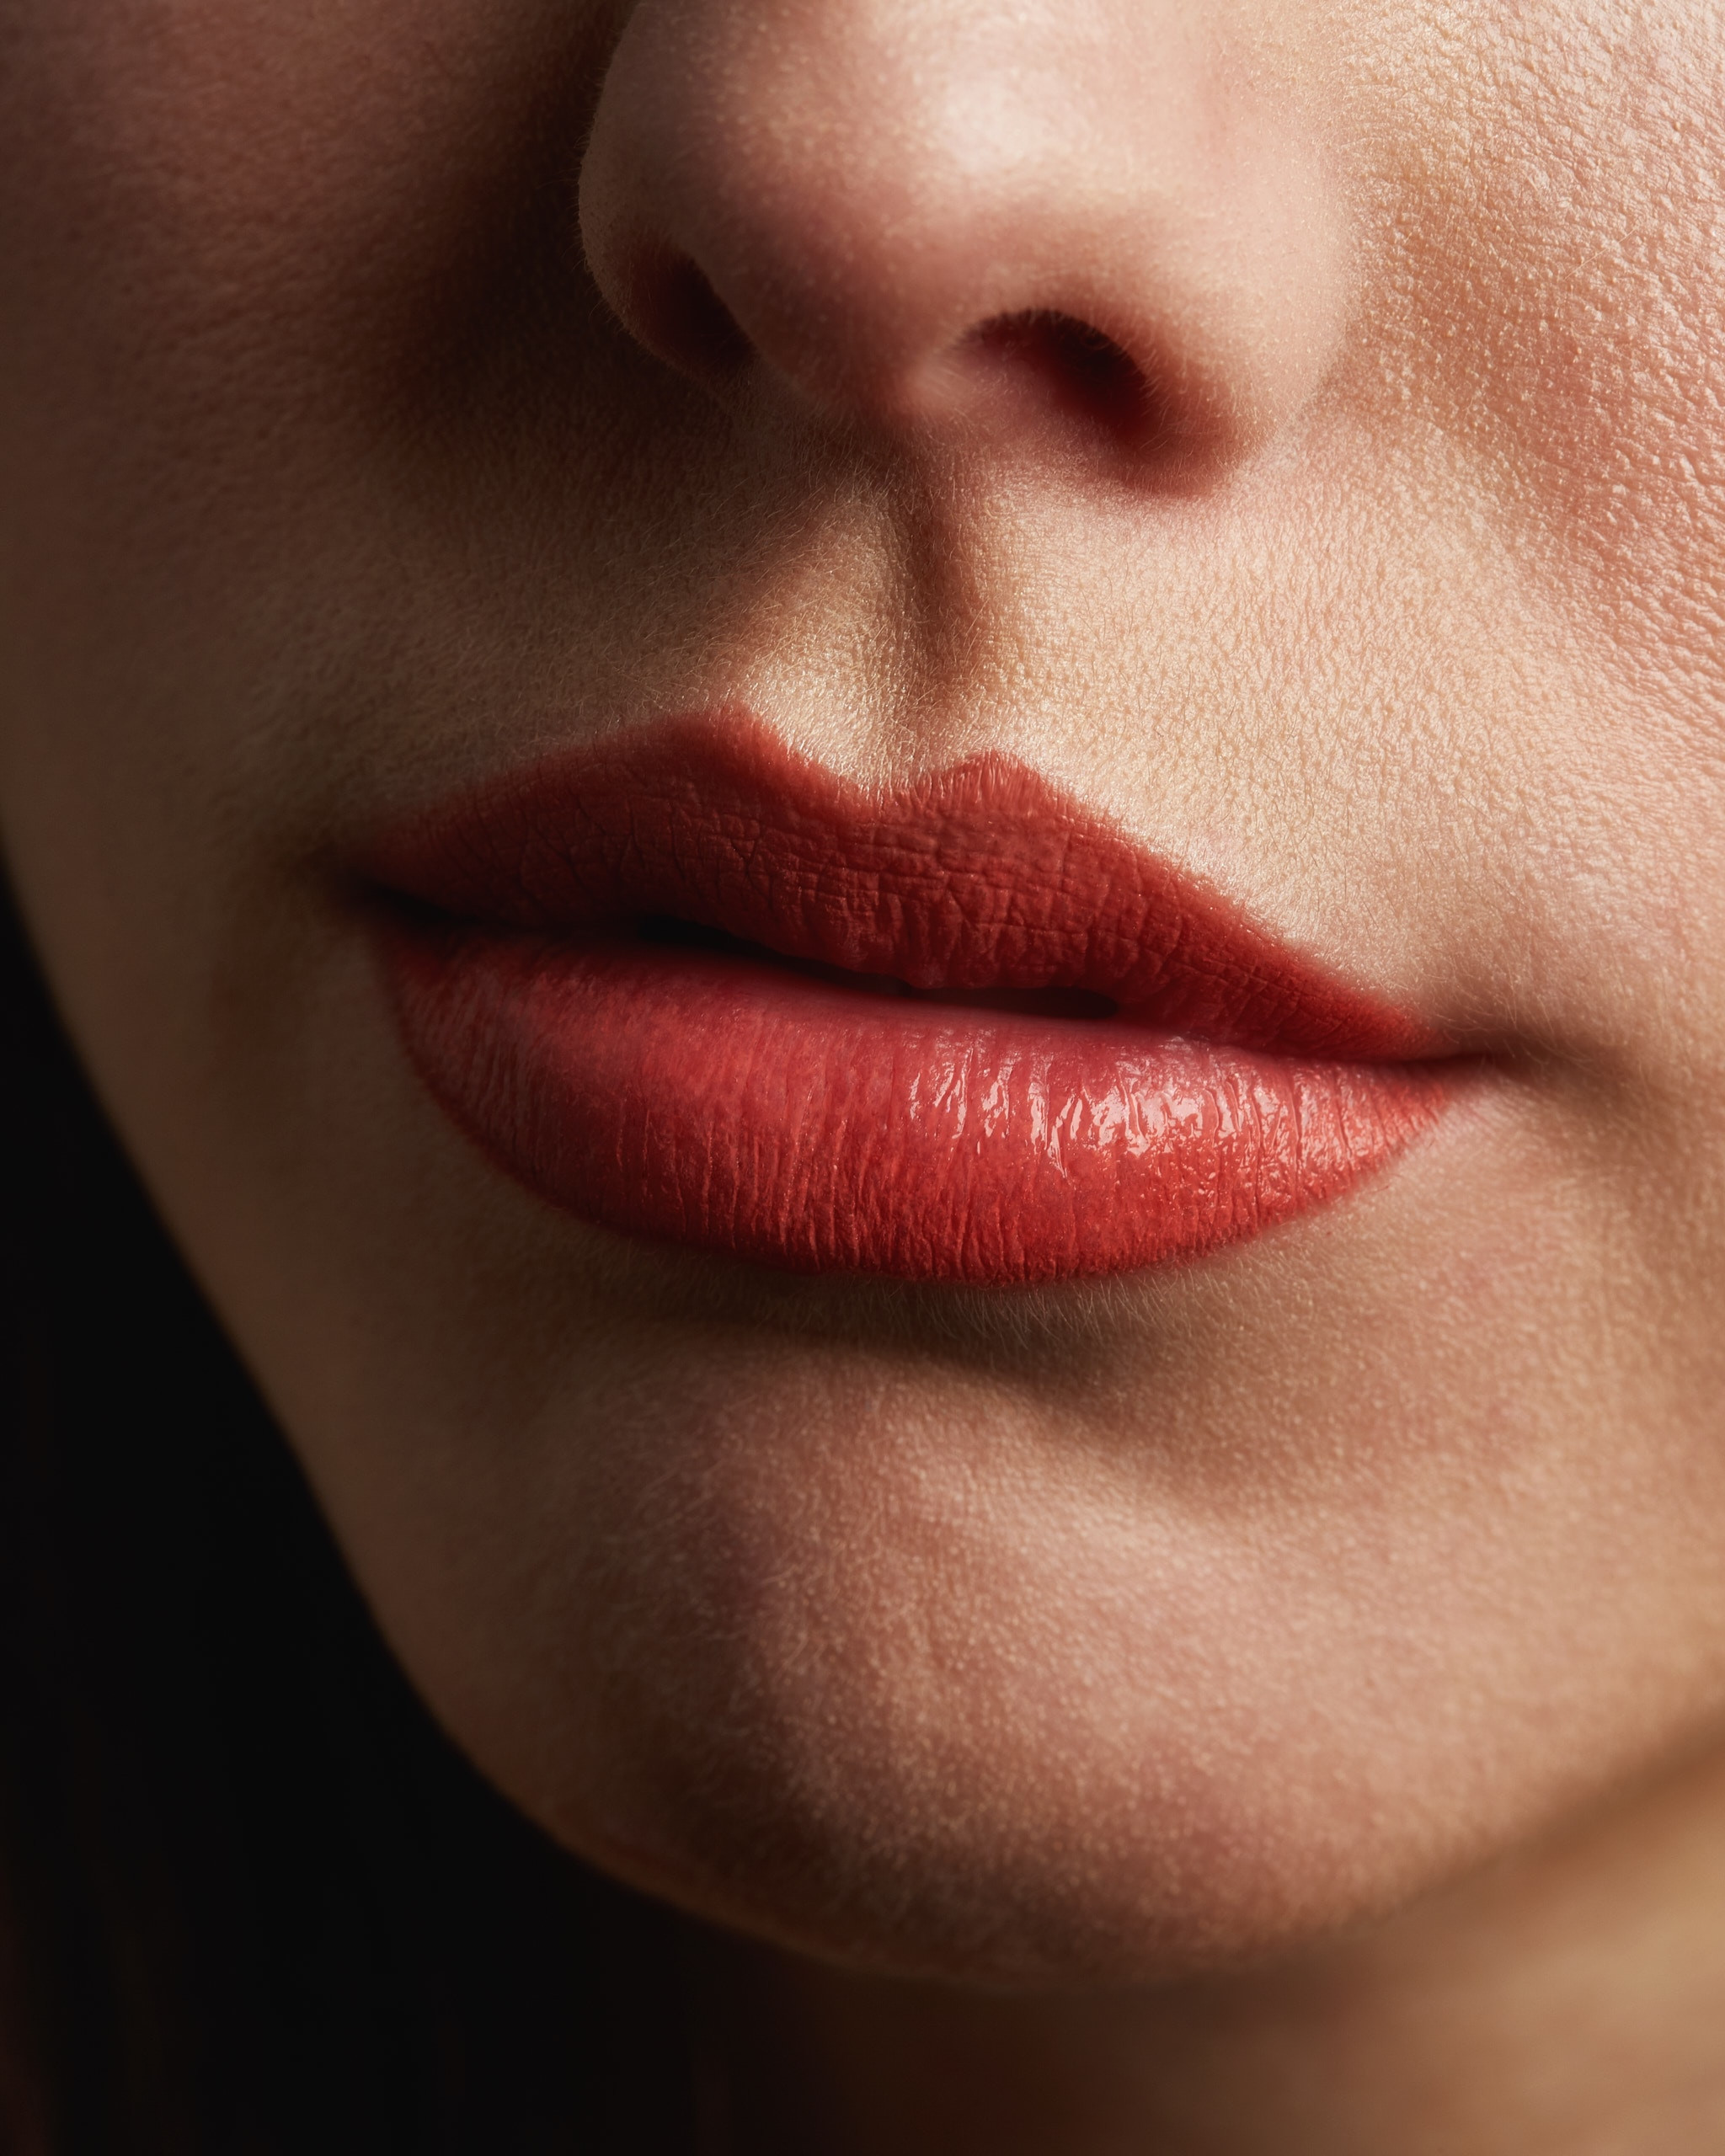 Q-Lips™ 4 Day Training Course